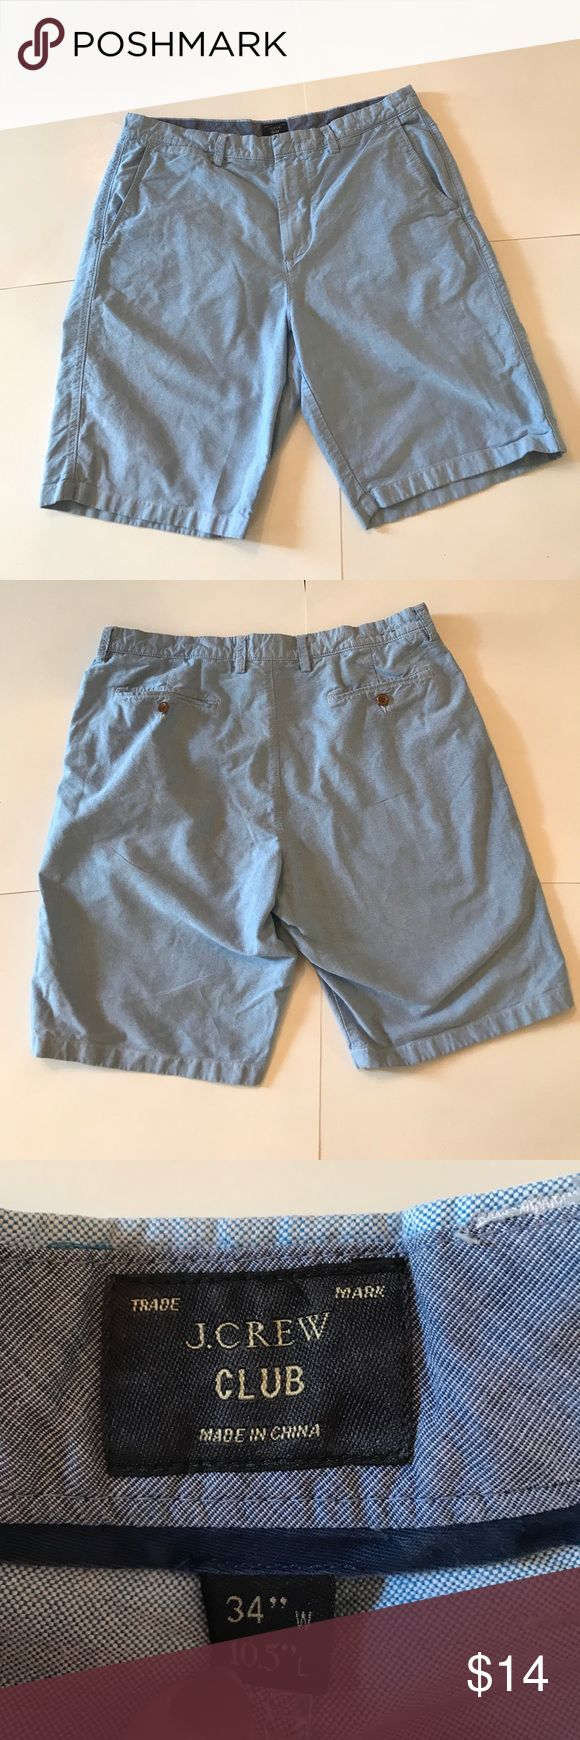 """Men's J. Crew Club Shorts in Blue Chambray Men's J. Crew club shorts in lightweight blue chambray. Excellent condition! Very versatile for summer! 10.5"""" inseam. 100% cotton. Size 34. J. Crew Shorts Flat Front"""